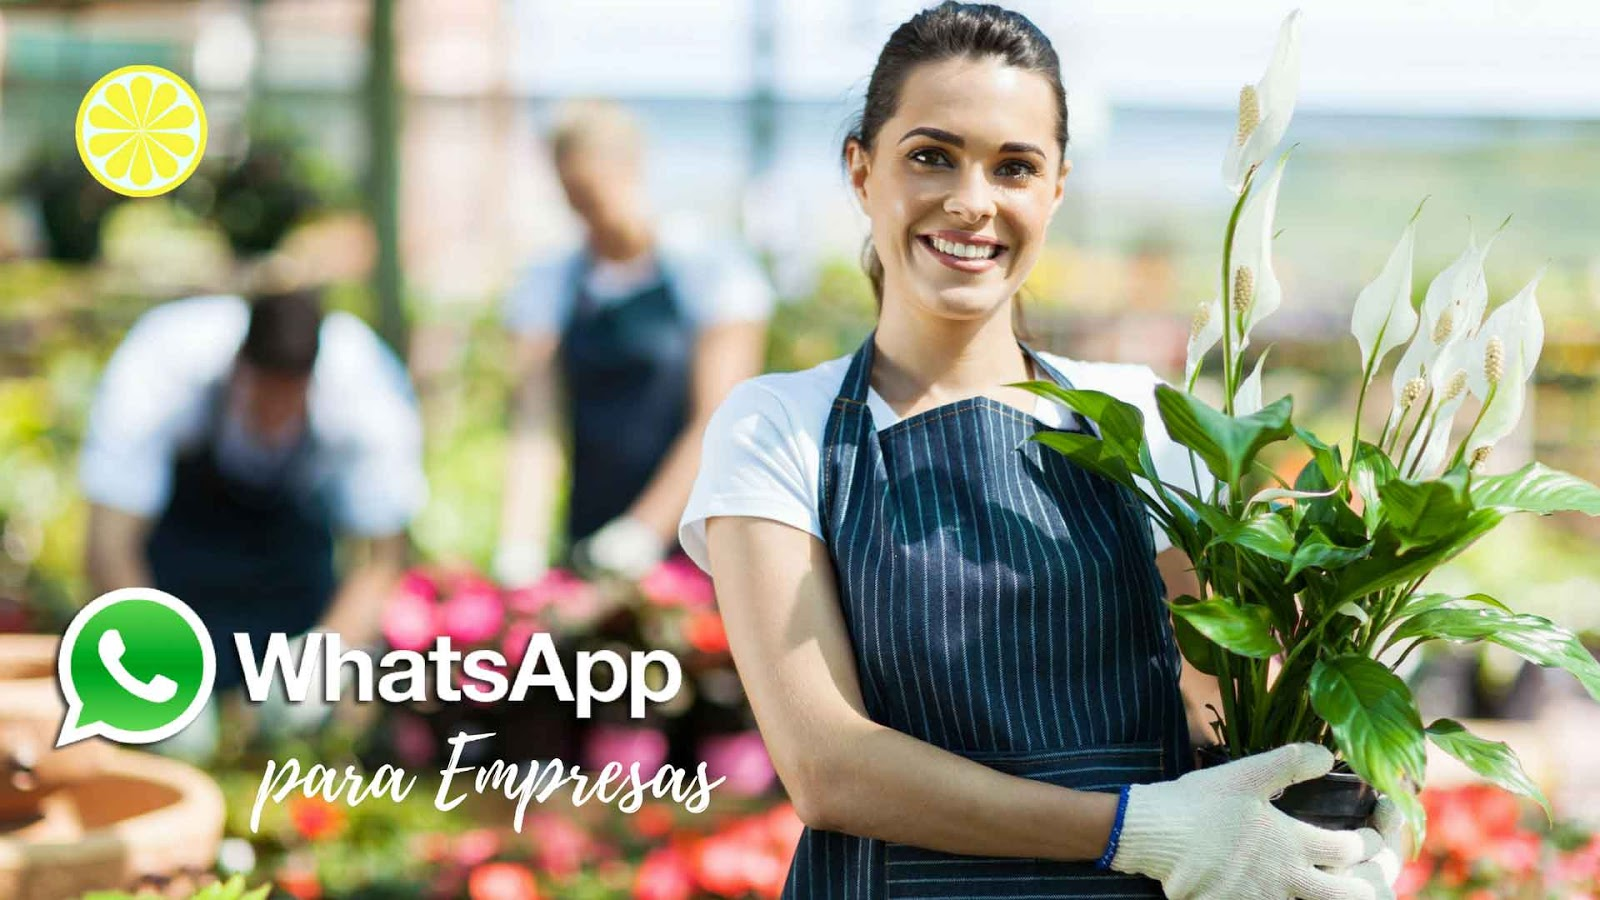 Whatsapp for business, whats para empresas